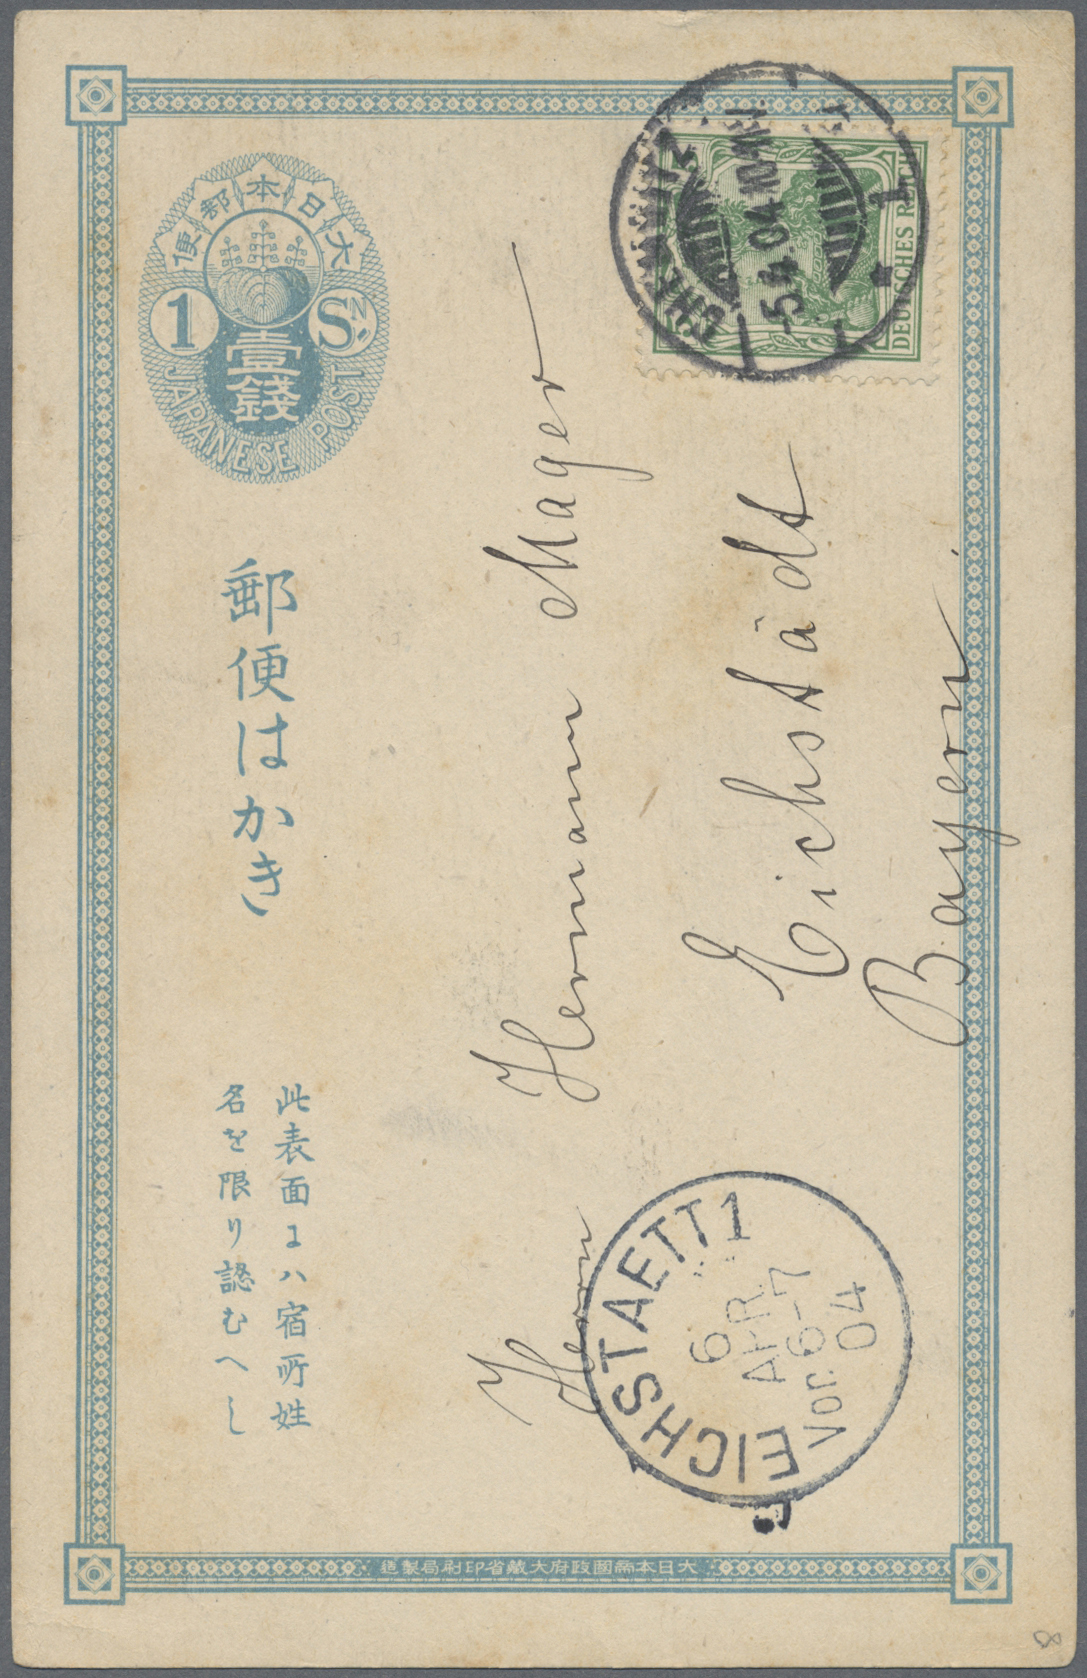 Lot 34533 - Japan  -  Auktionshaus Christoph Gärtner GmbH & Co. KG Collections Germany,  Collections Supplement, Surprise boxes #39 Day 7